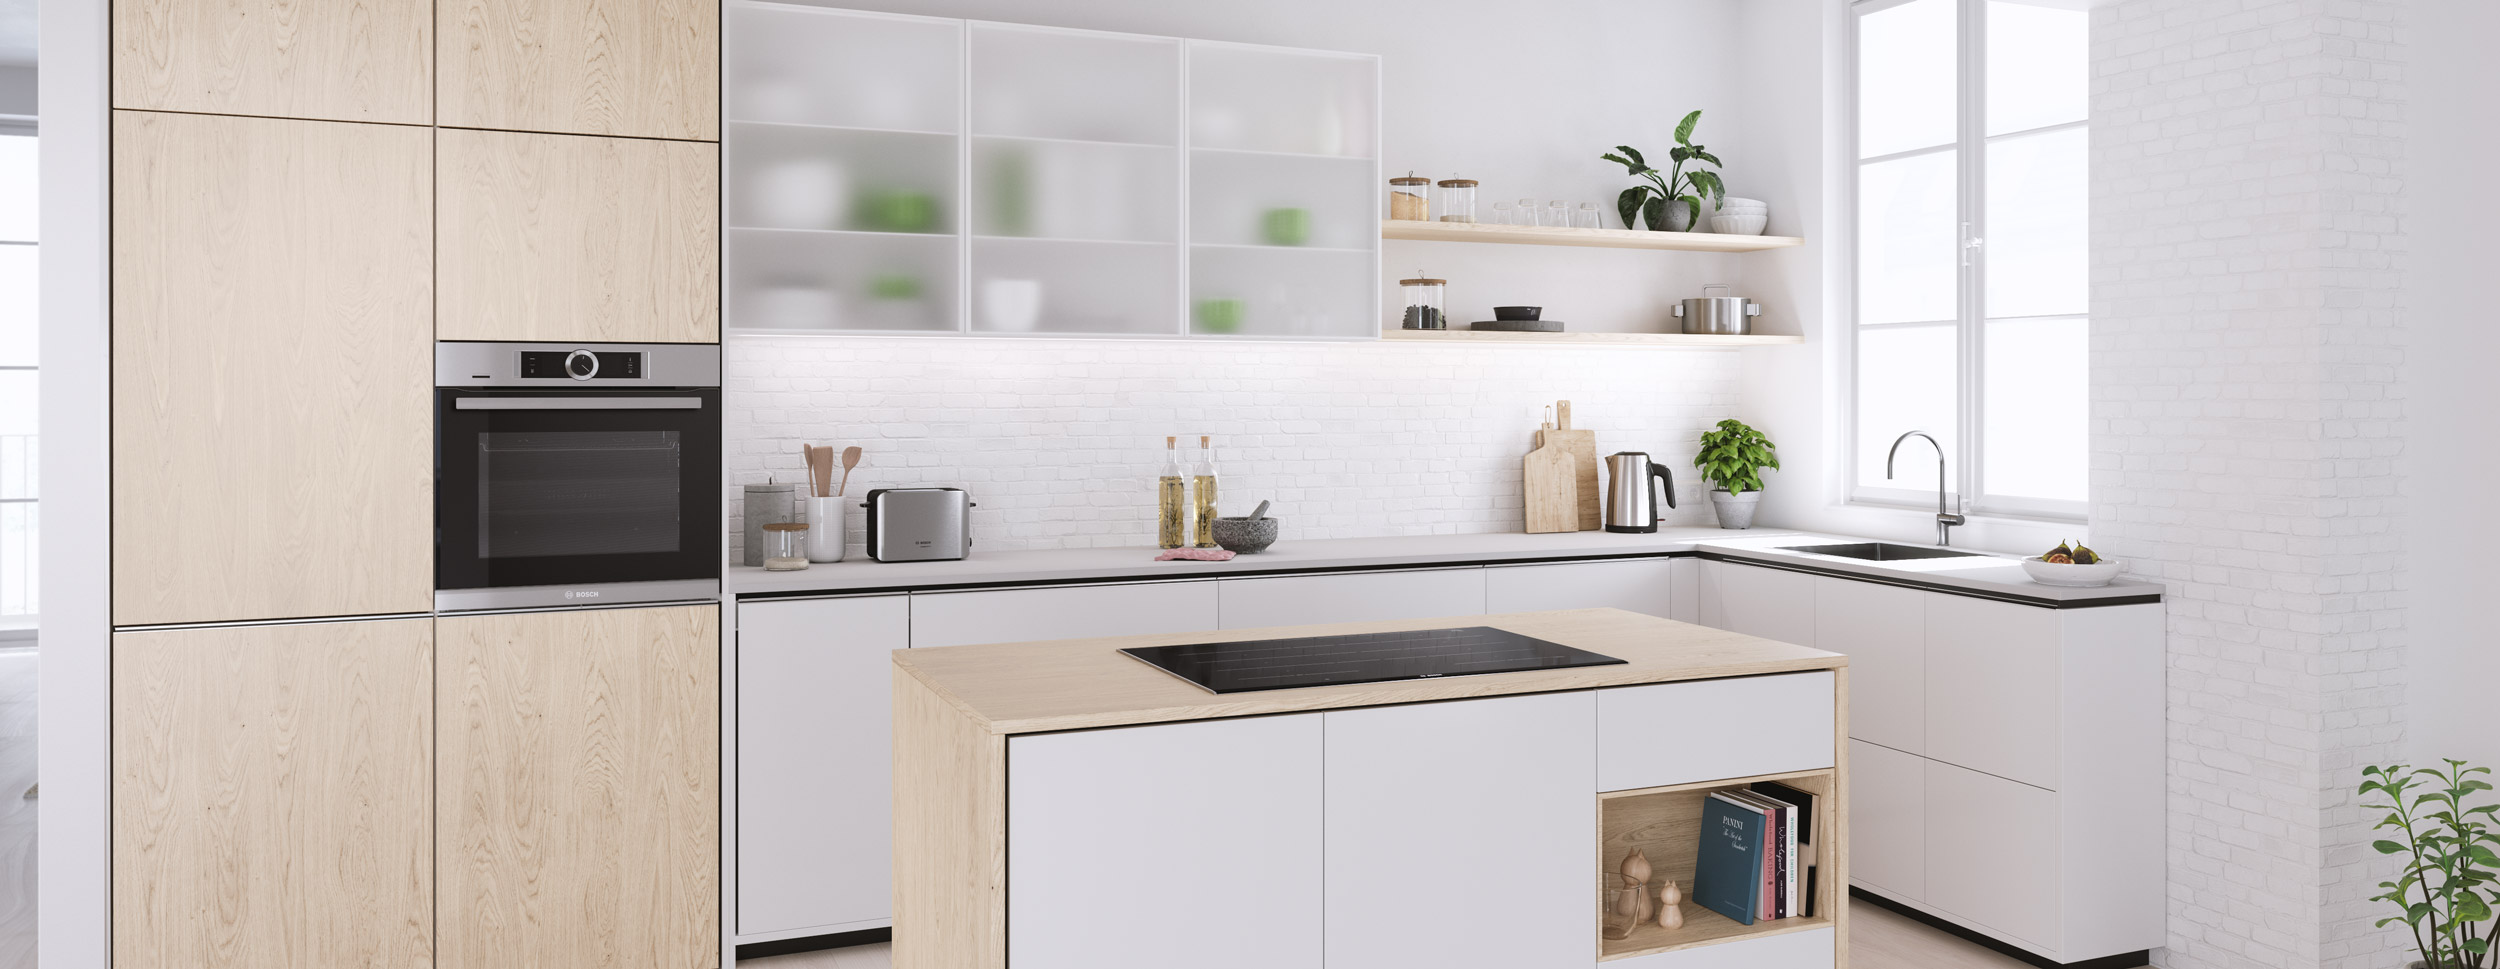 CGI - Bosch - Home Appliances - Hobs